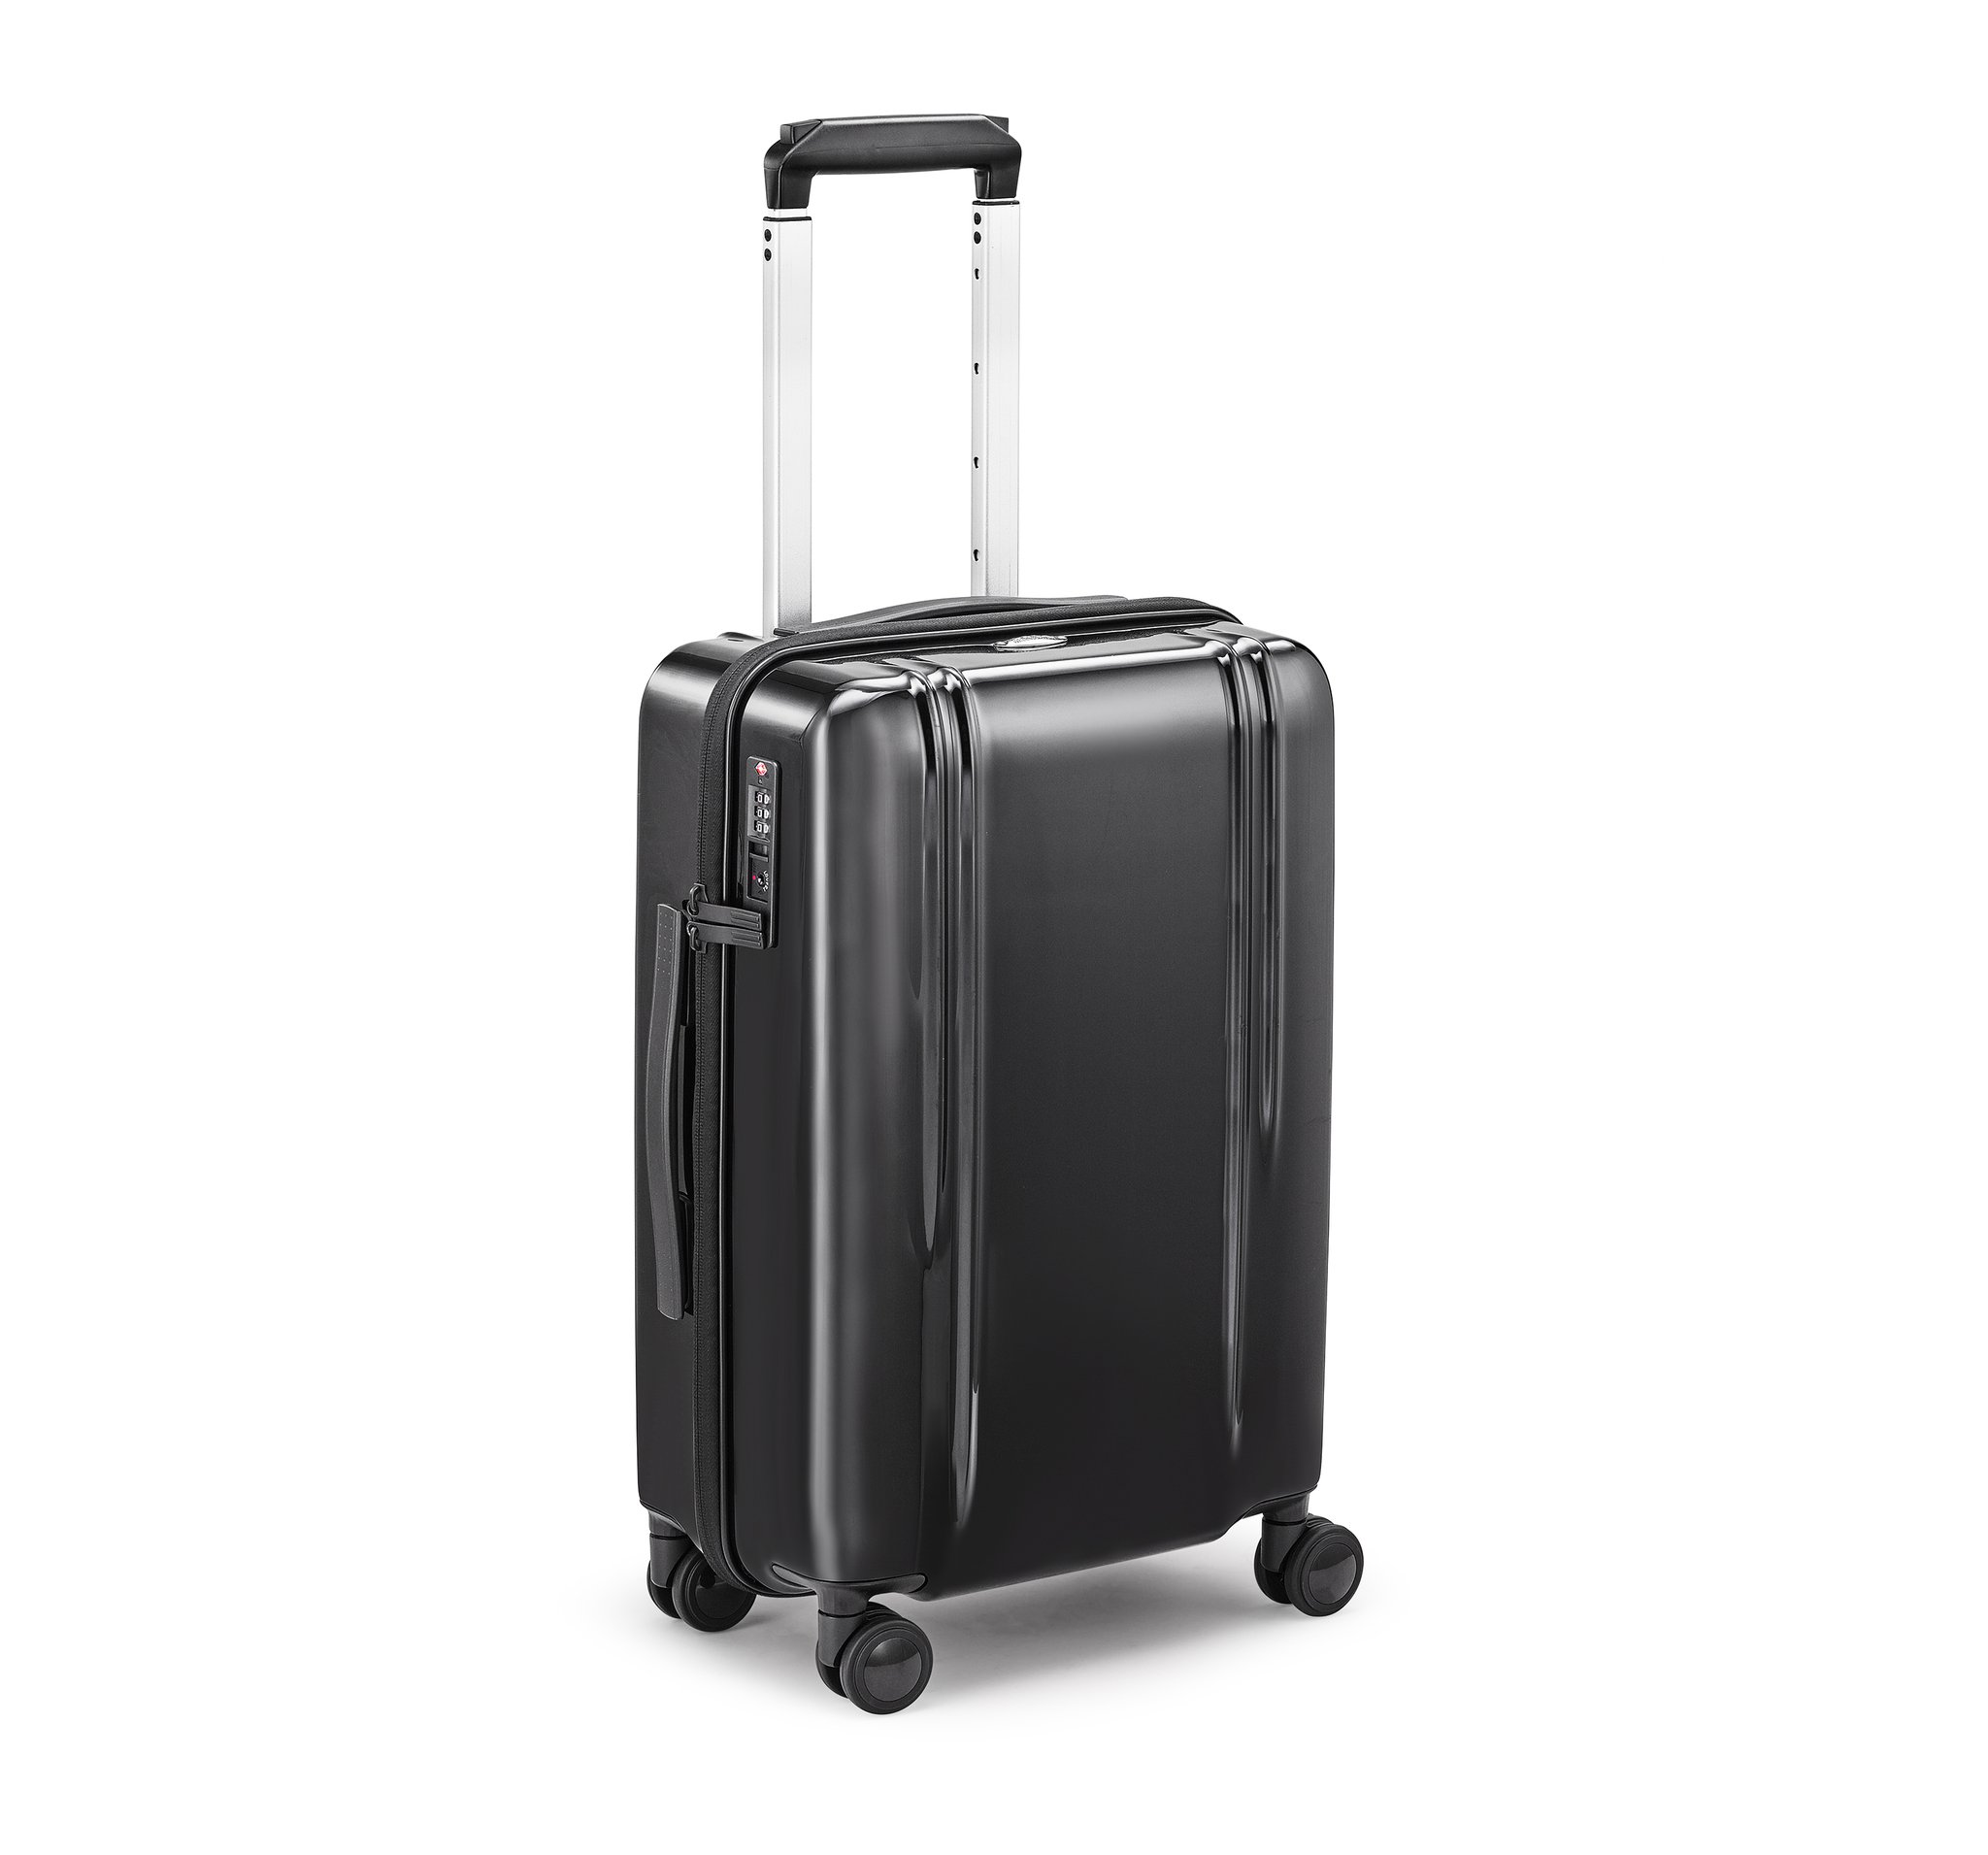 "ZRL - 20"" International Lightweight Carry-On Luggage by Zero Halliburton (Color: Black)"